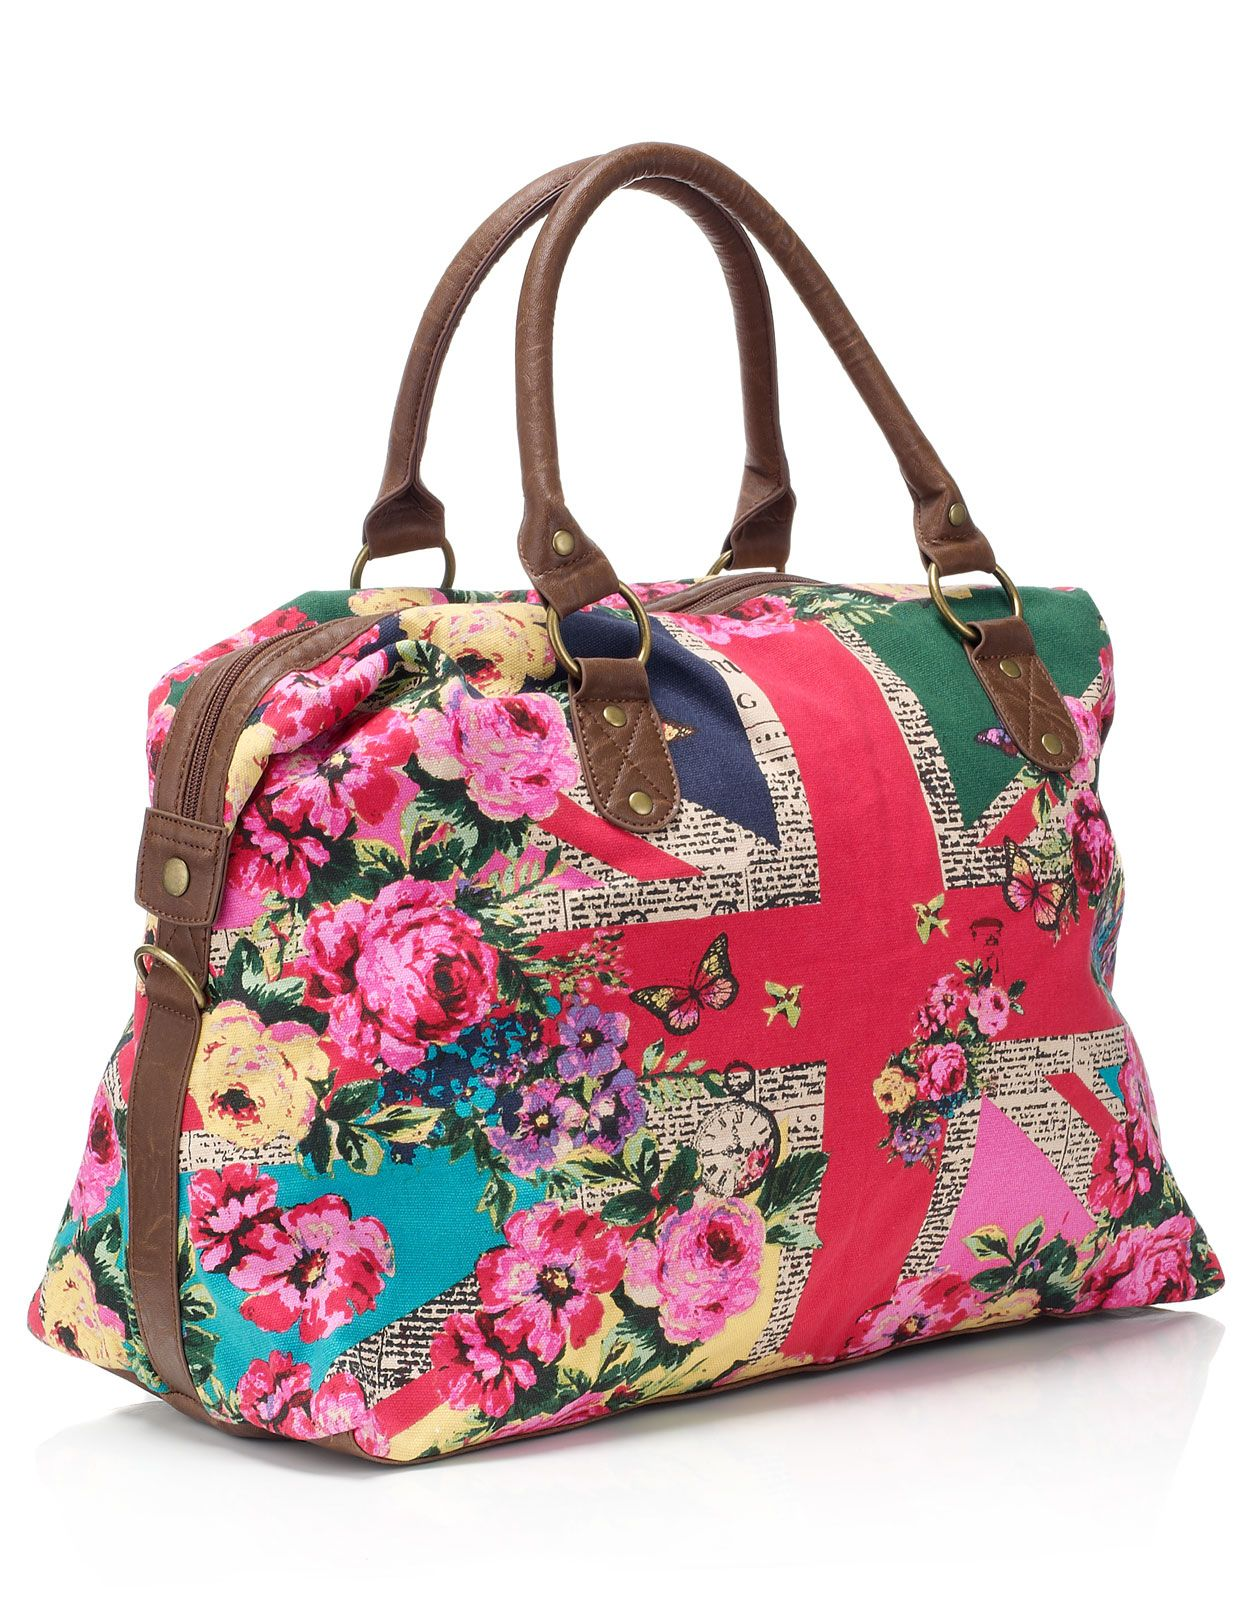 Cute: New News Print Union Jack Weekender. $78. Via Accessorize ...